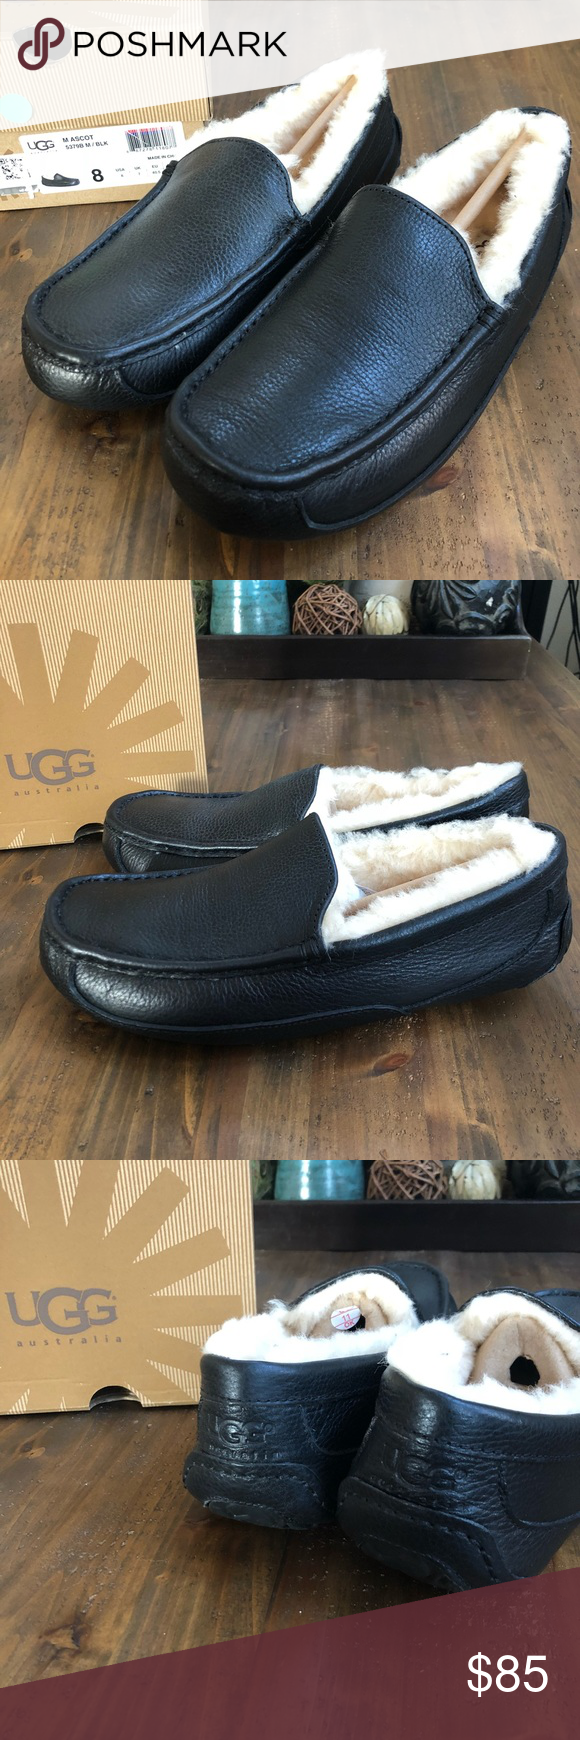 a70162ddfb1 Ugg Ascot Moccasin Slippers Leather also wo sz9.5 Uggs Slippers  UGG  Australia- UGGs Men Ascot - Leather Slippers. True to the UGG tradition of  laid-back ...